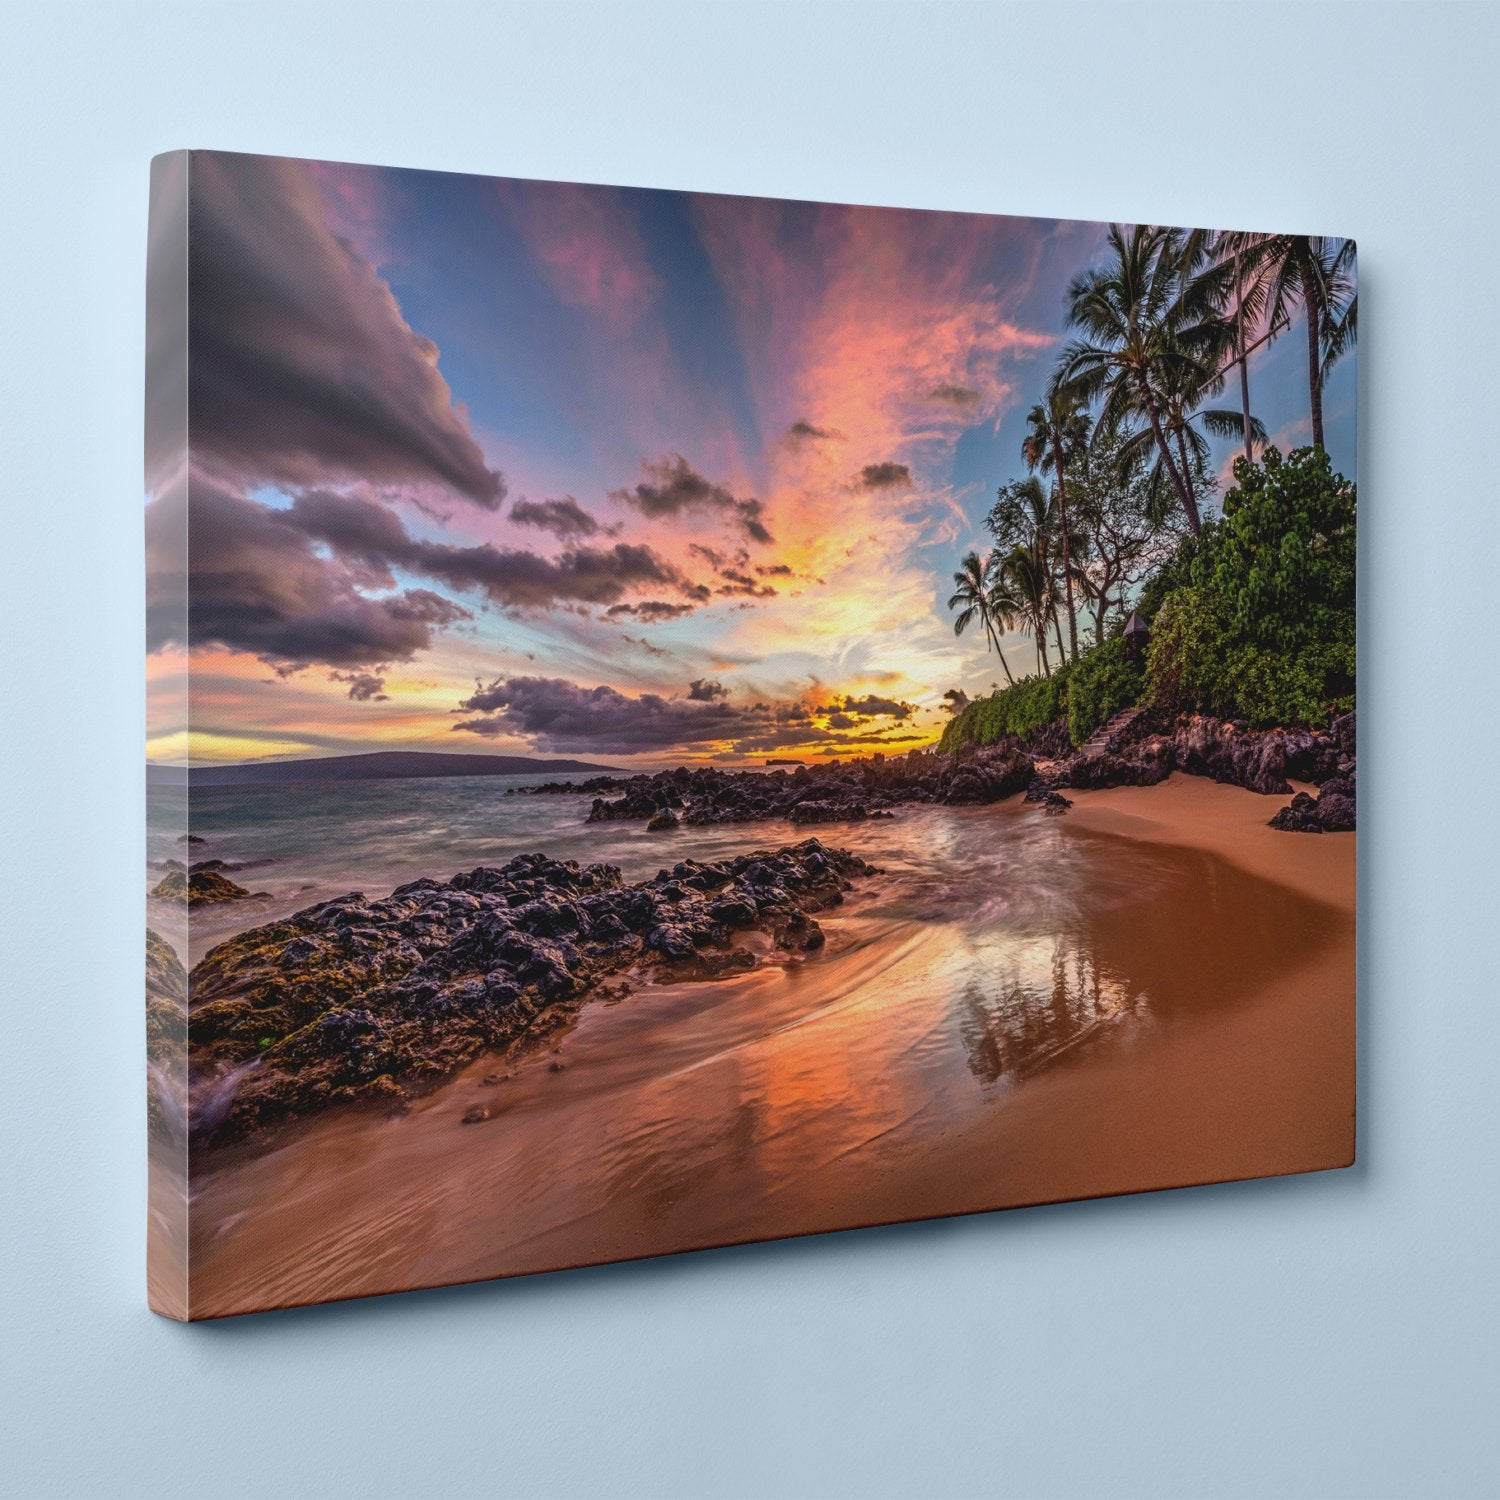 "Hawaiian Sunset at Secret Cove, Maui (12"" x 18"") - Canvas Wrap Print"